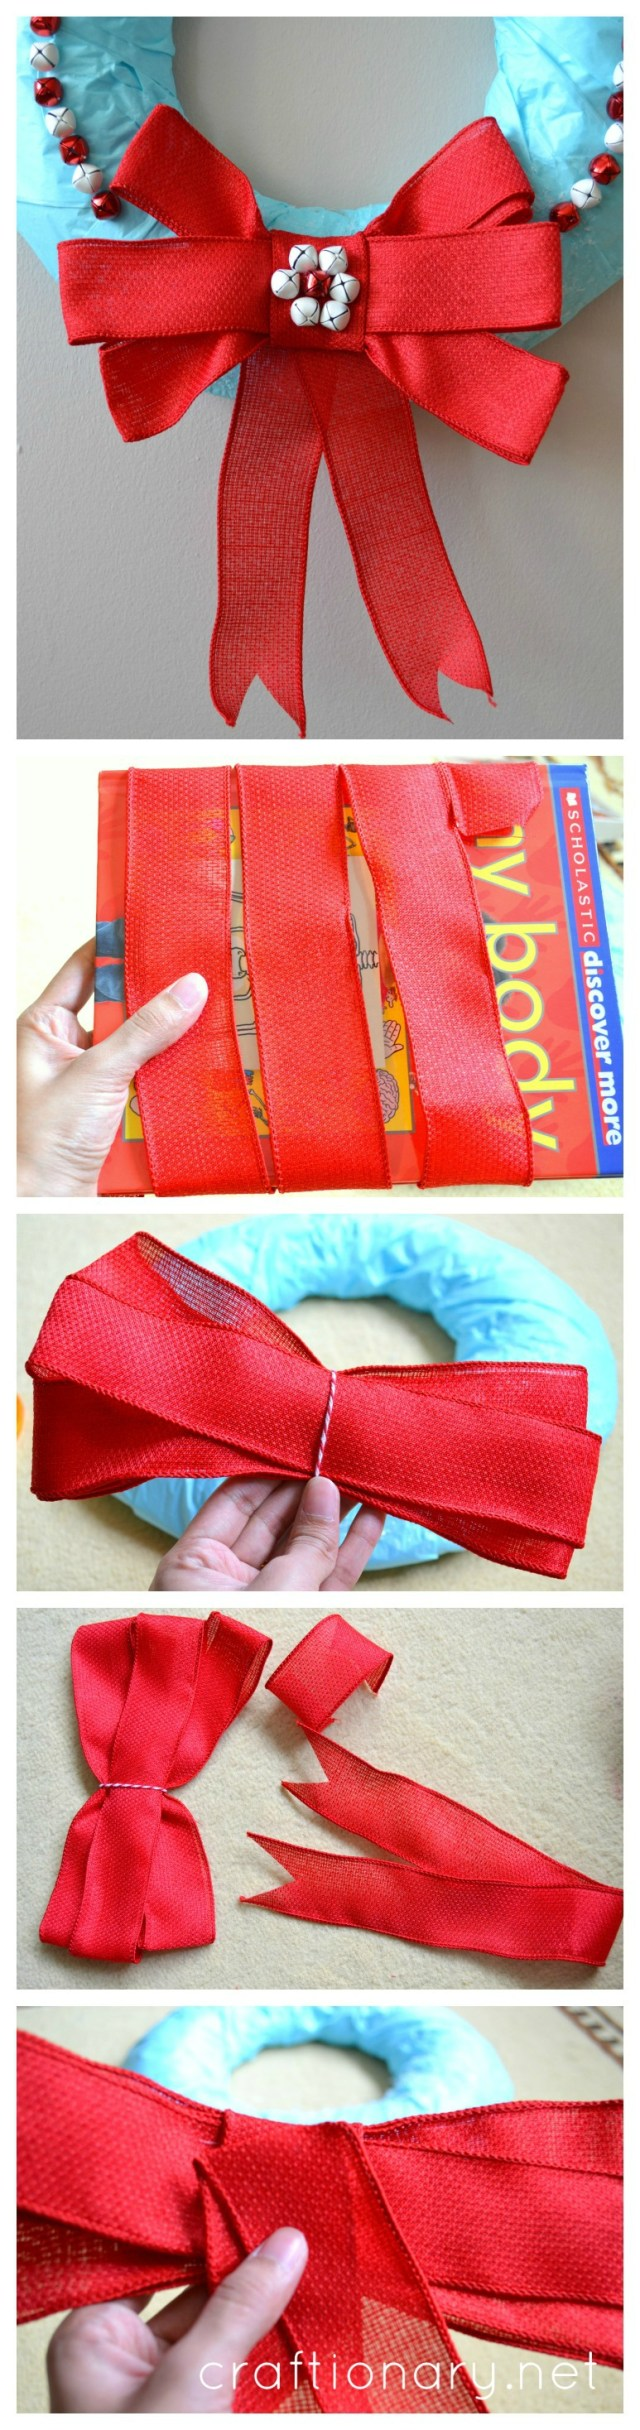 Make-a-perfect-bow